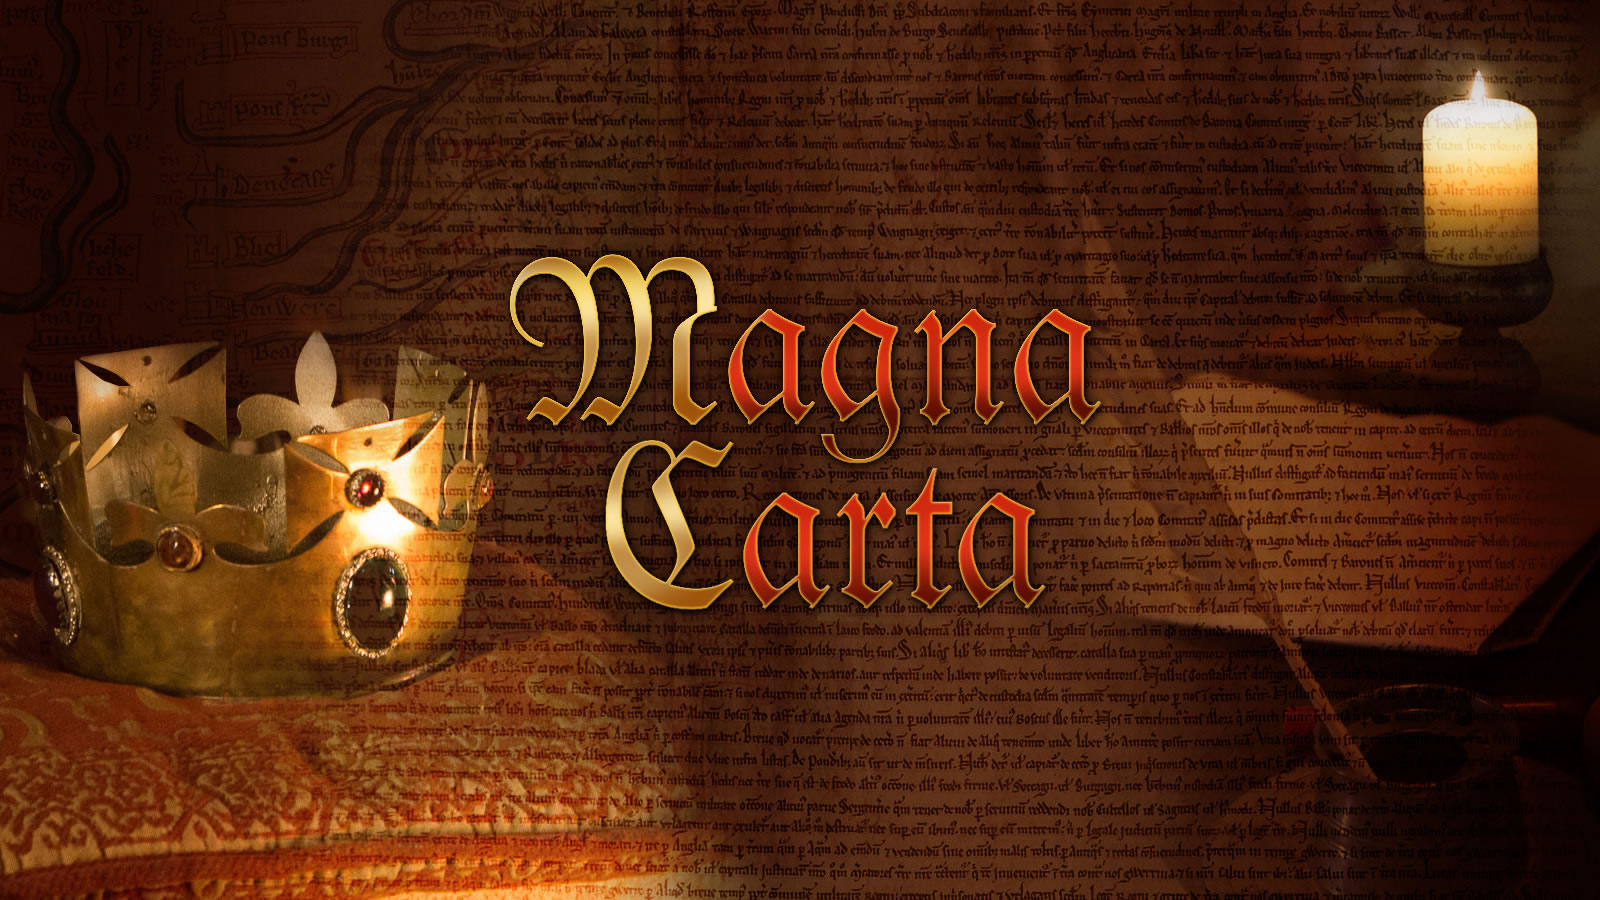 Magna Carta official and most complete discography homepage